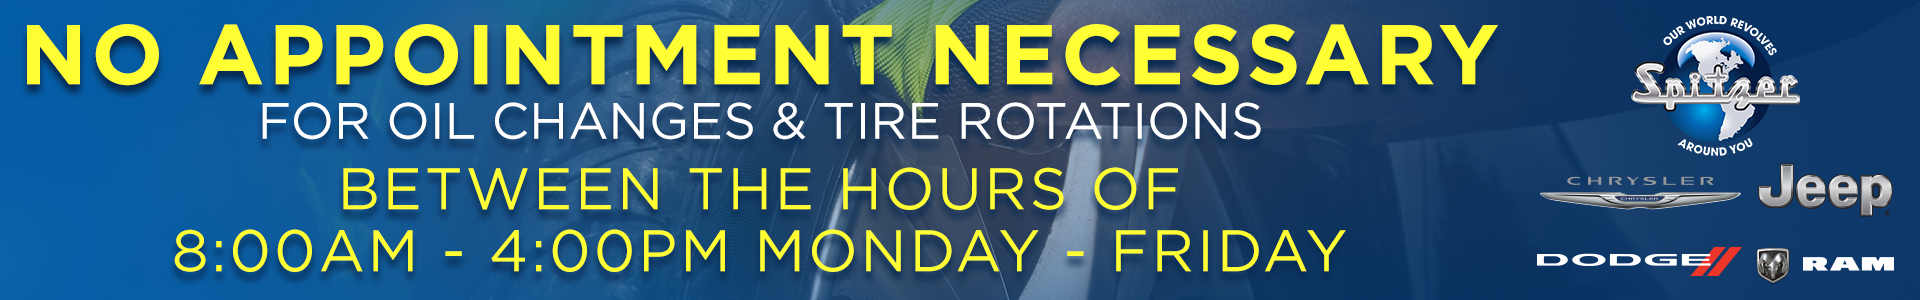 No appointment neccessary for oil changes and tire rotations